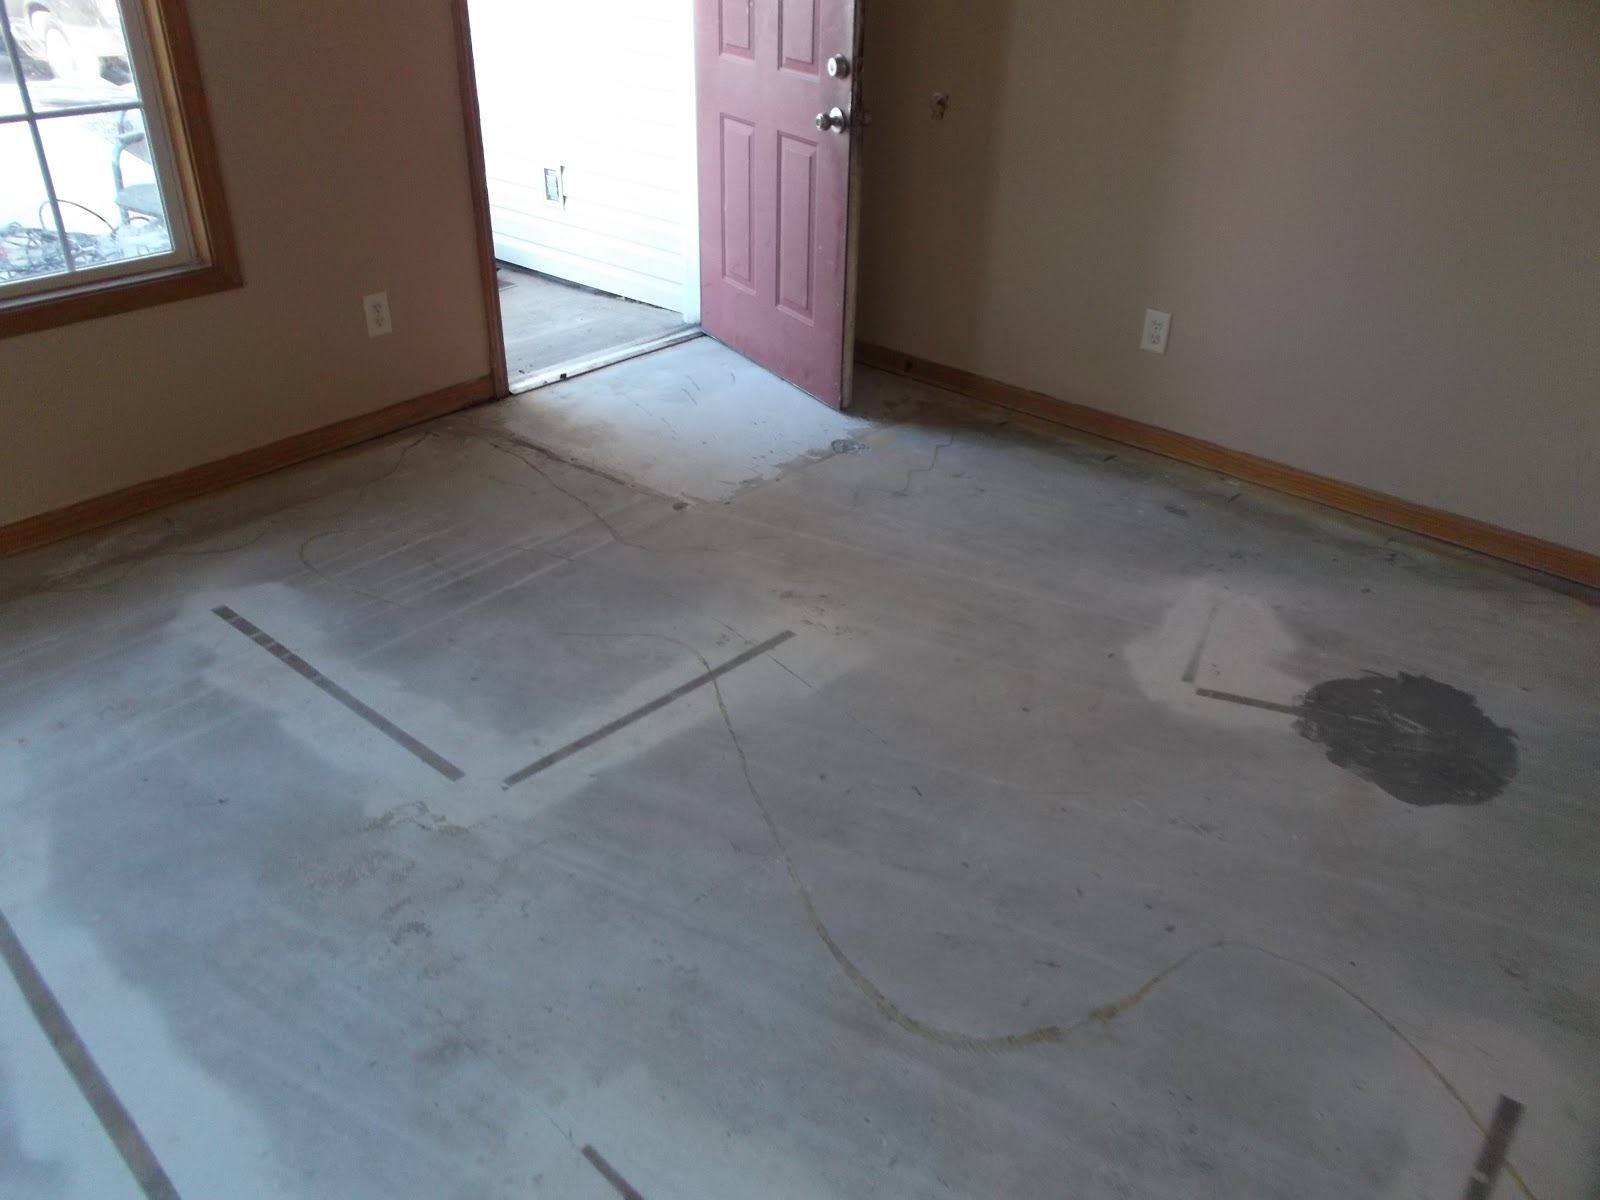 Trafficmaster Allure Vinyl Flooring Installation